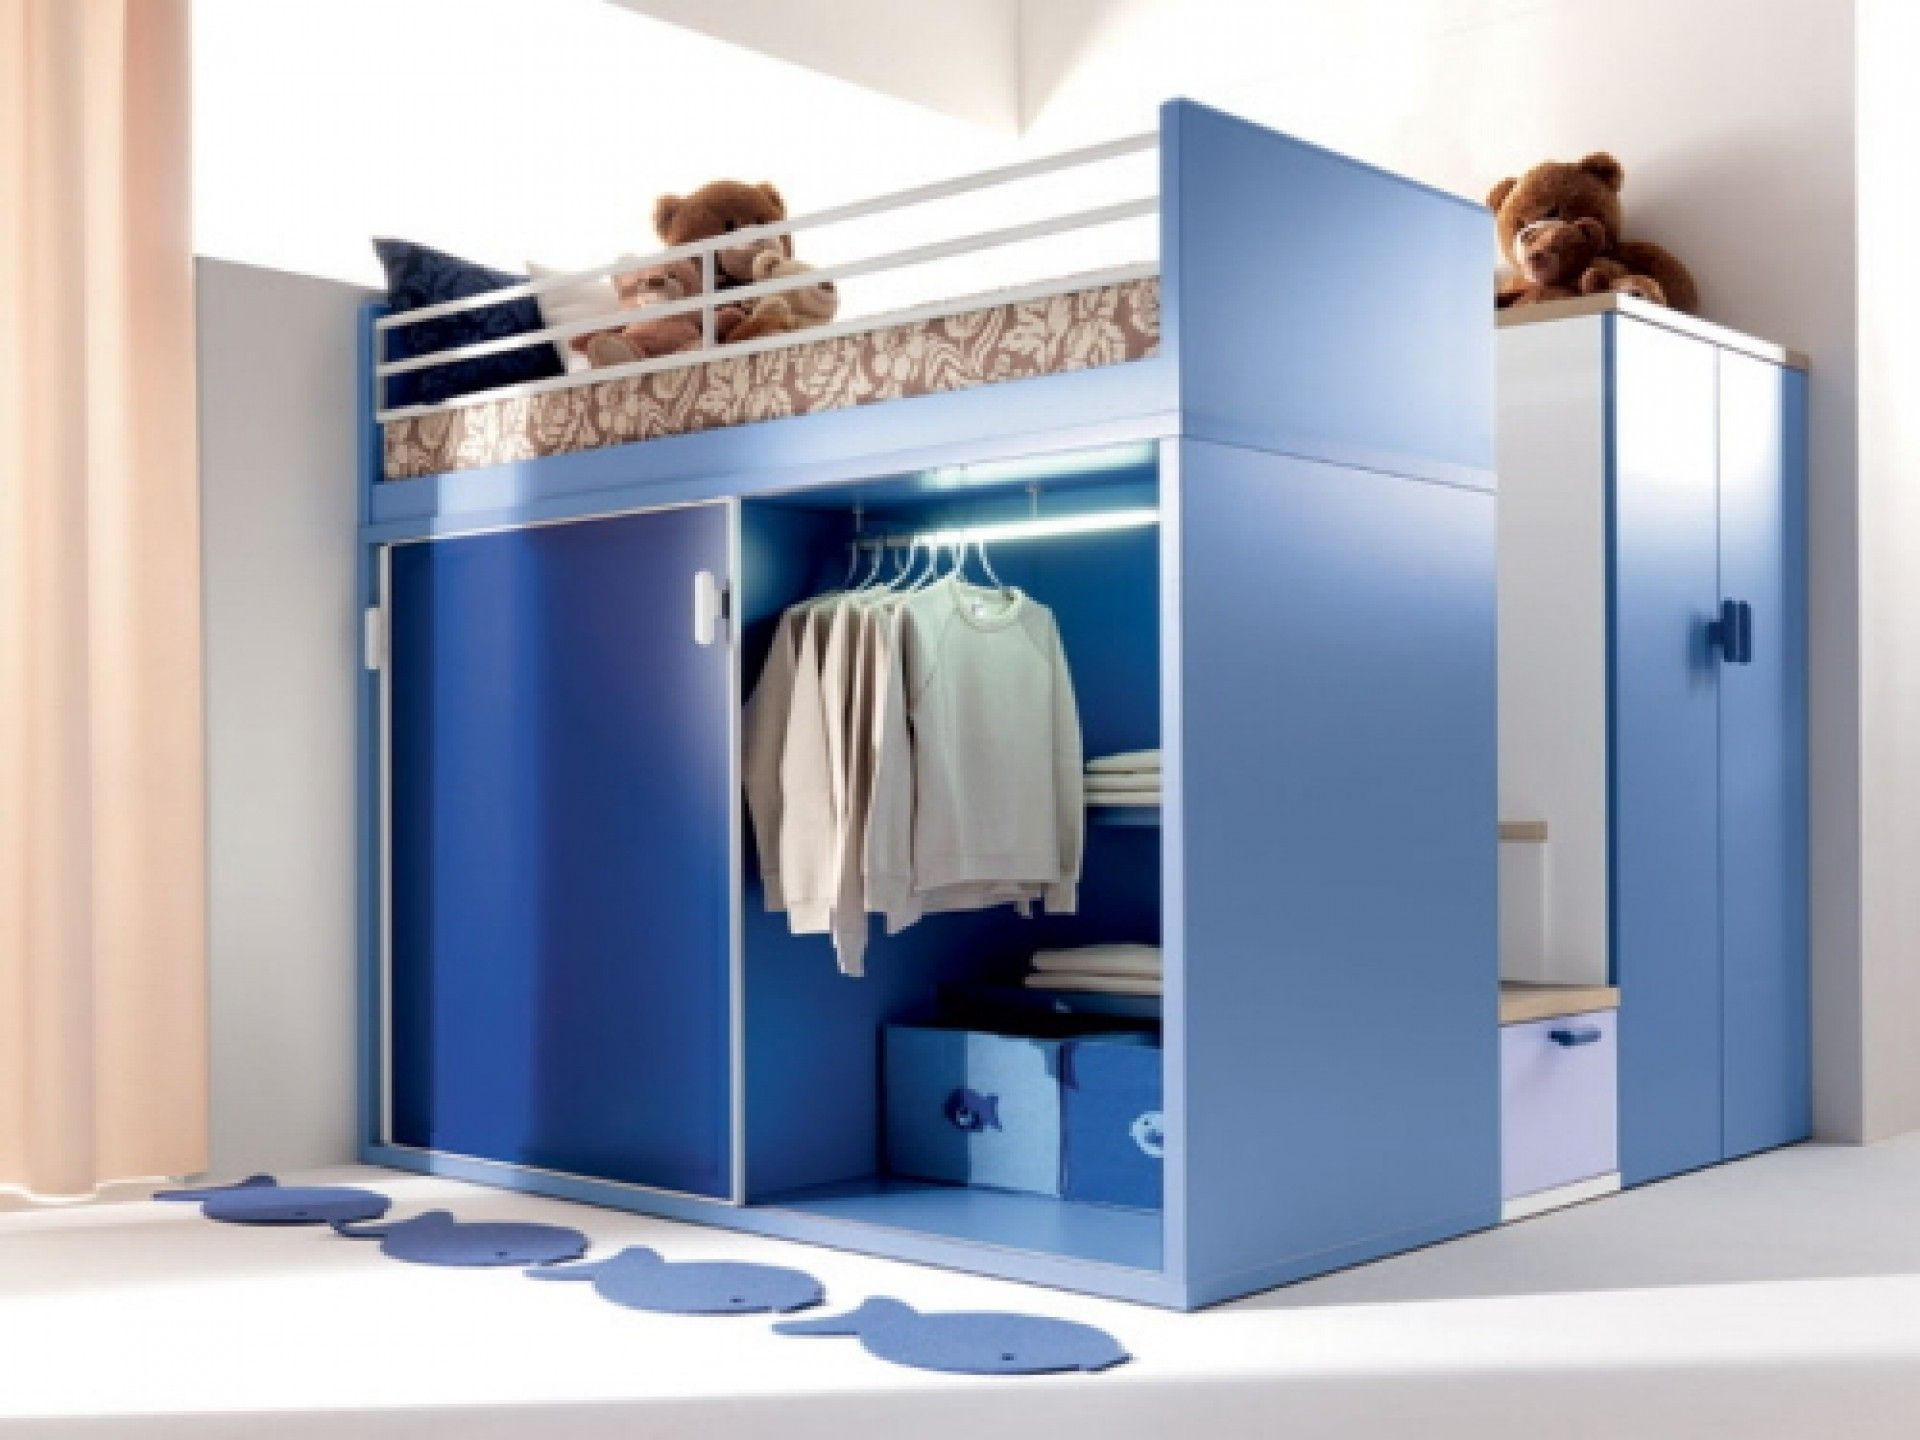 entracing bedroom loft design. Wooden Loft Bunk Bed In Glossy Blue Finish Integrated With Small Closet  Having Steel Pipe Clothes Hanger And Bottom Storage Also Linen Shelves Entrancing interior blue closet for small bedroom under loft bed catchy